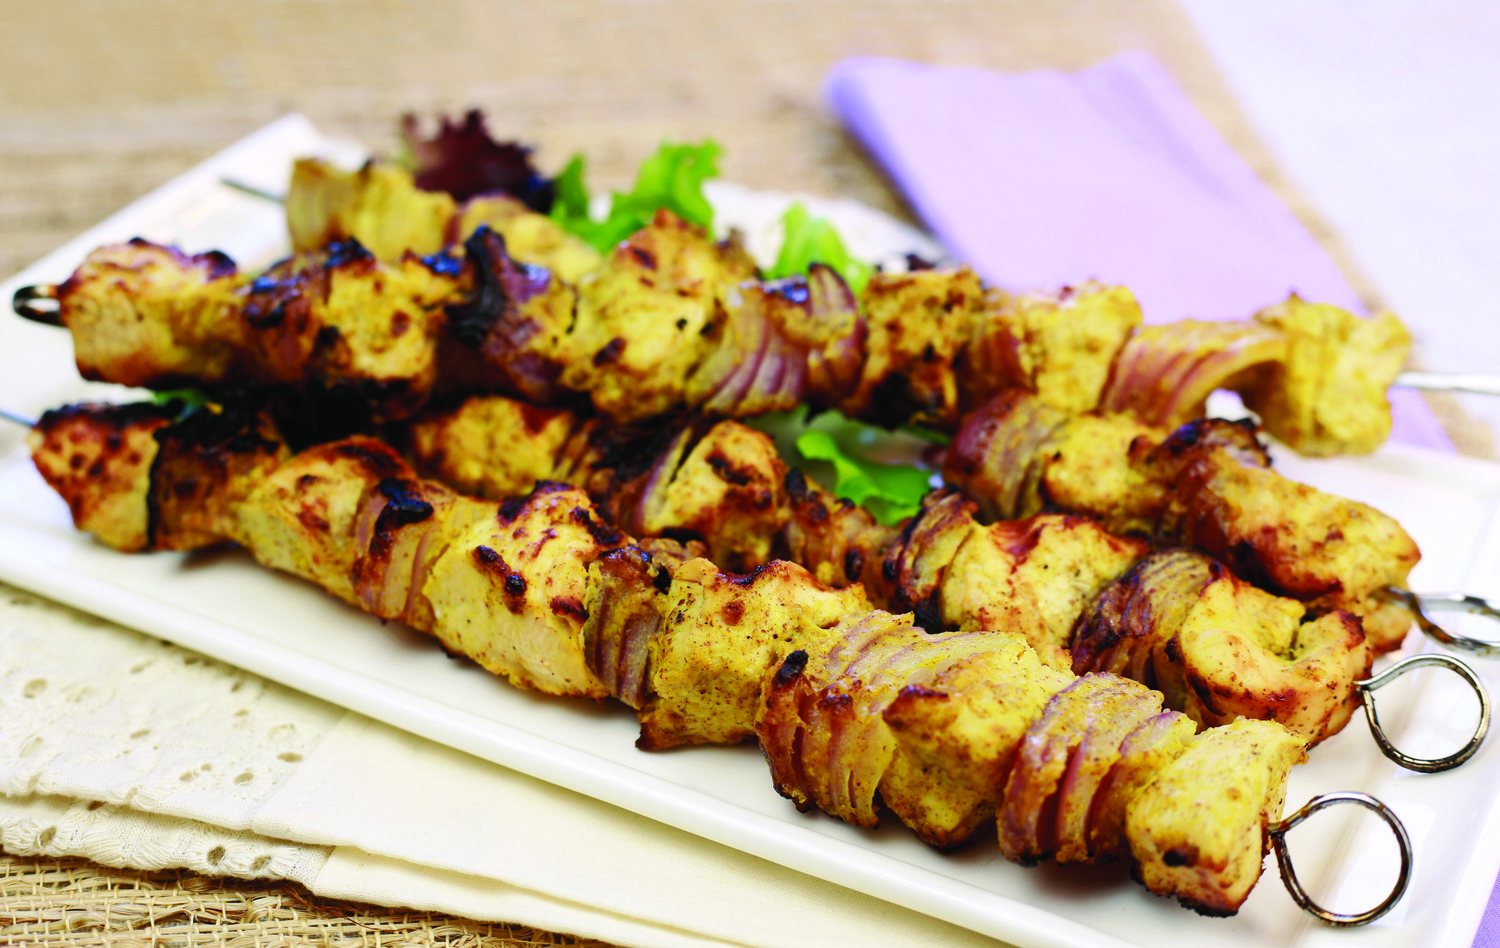 Kabobs are a simple way to enjoy many of your favorite fresh flavors — with their easy preparation and quick cooking time.